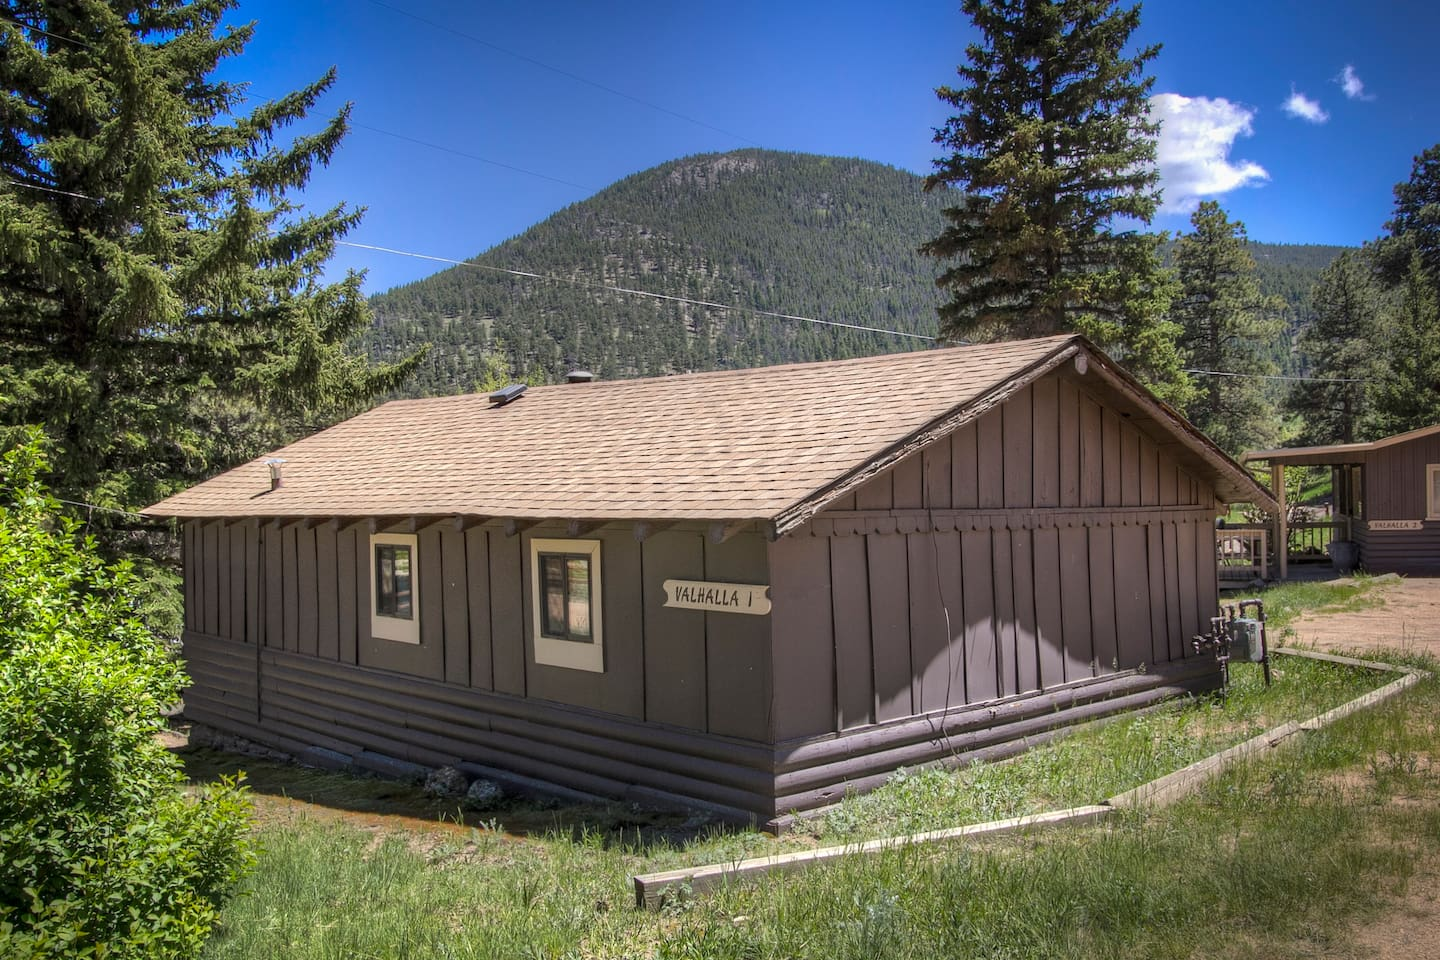 man rentals rental side sauna colorado cabins private on tub more cabin bed short mountain park hot estes vacation usa river pool term heated